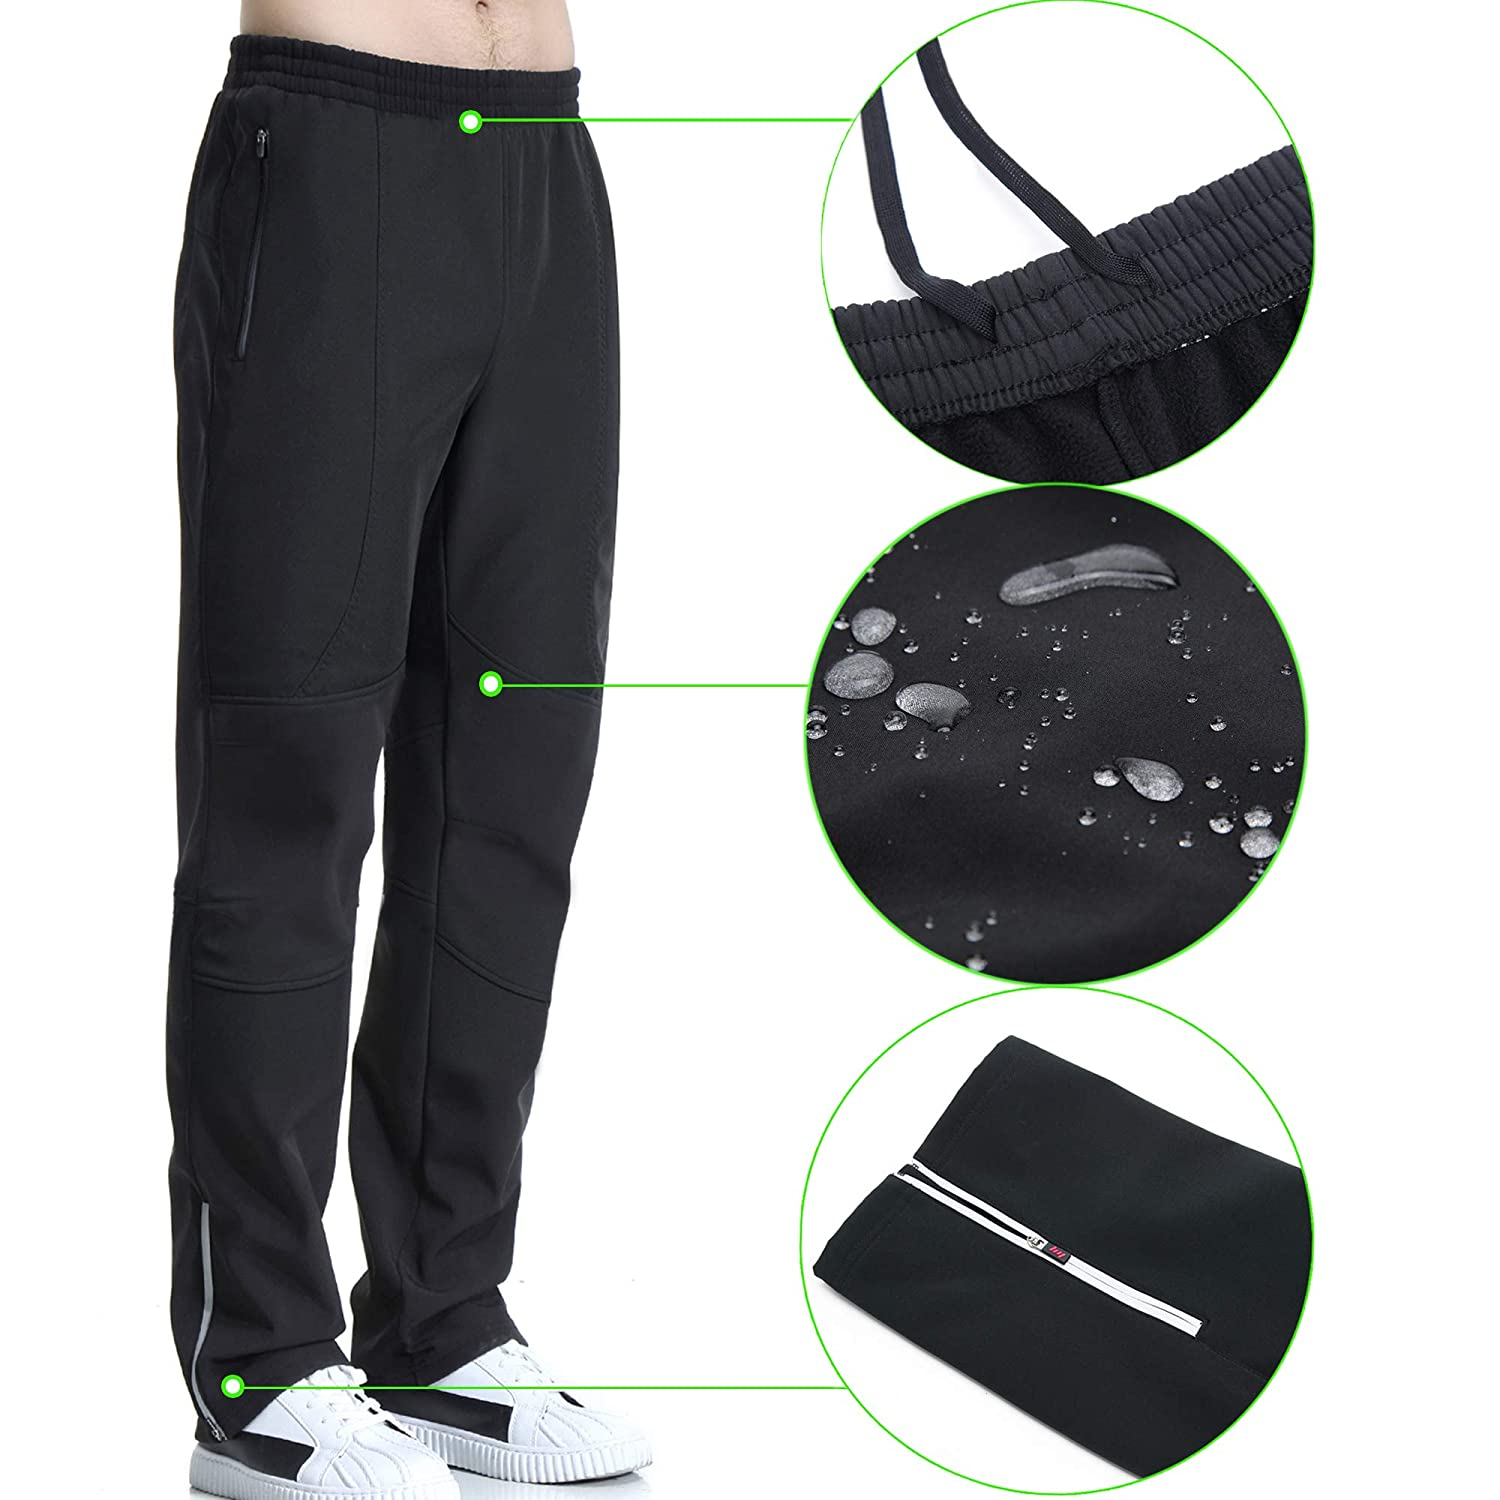 beroy Cycling Pants Windproof Thermal Fleece Workout Winter Pants for Men